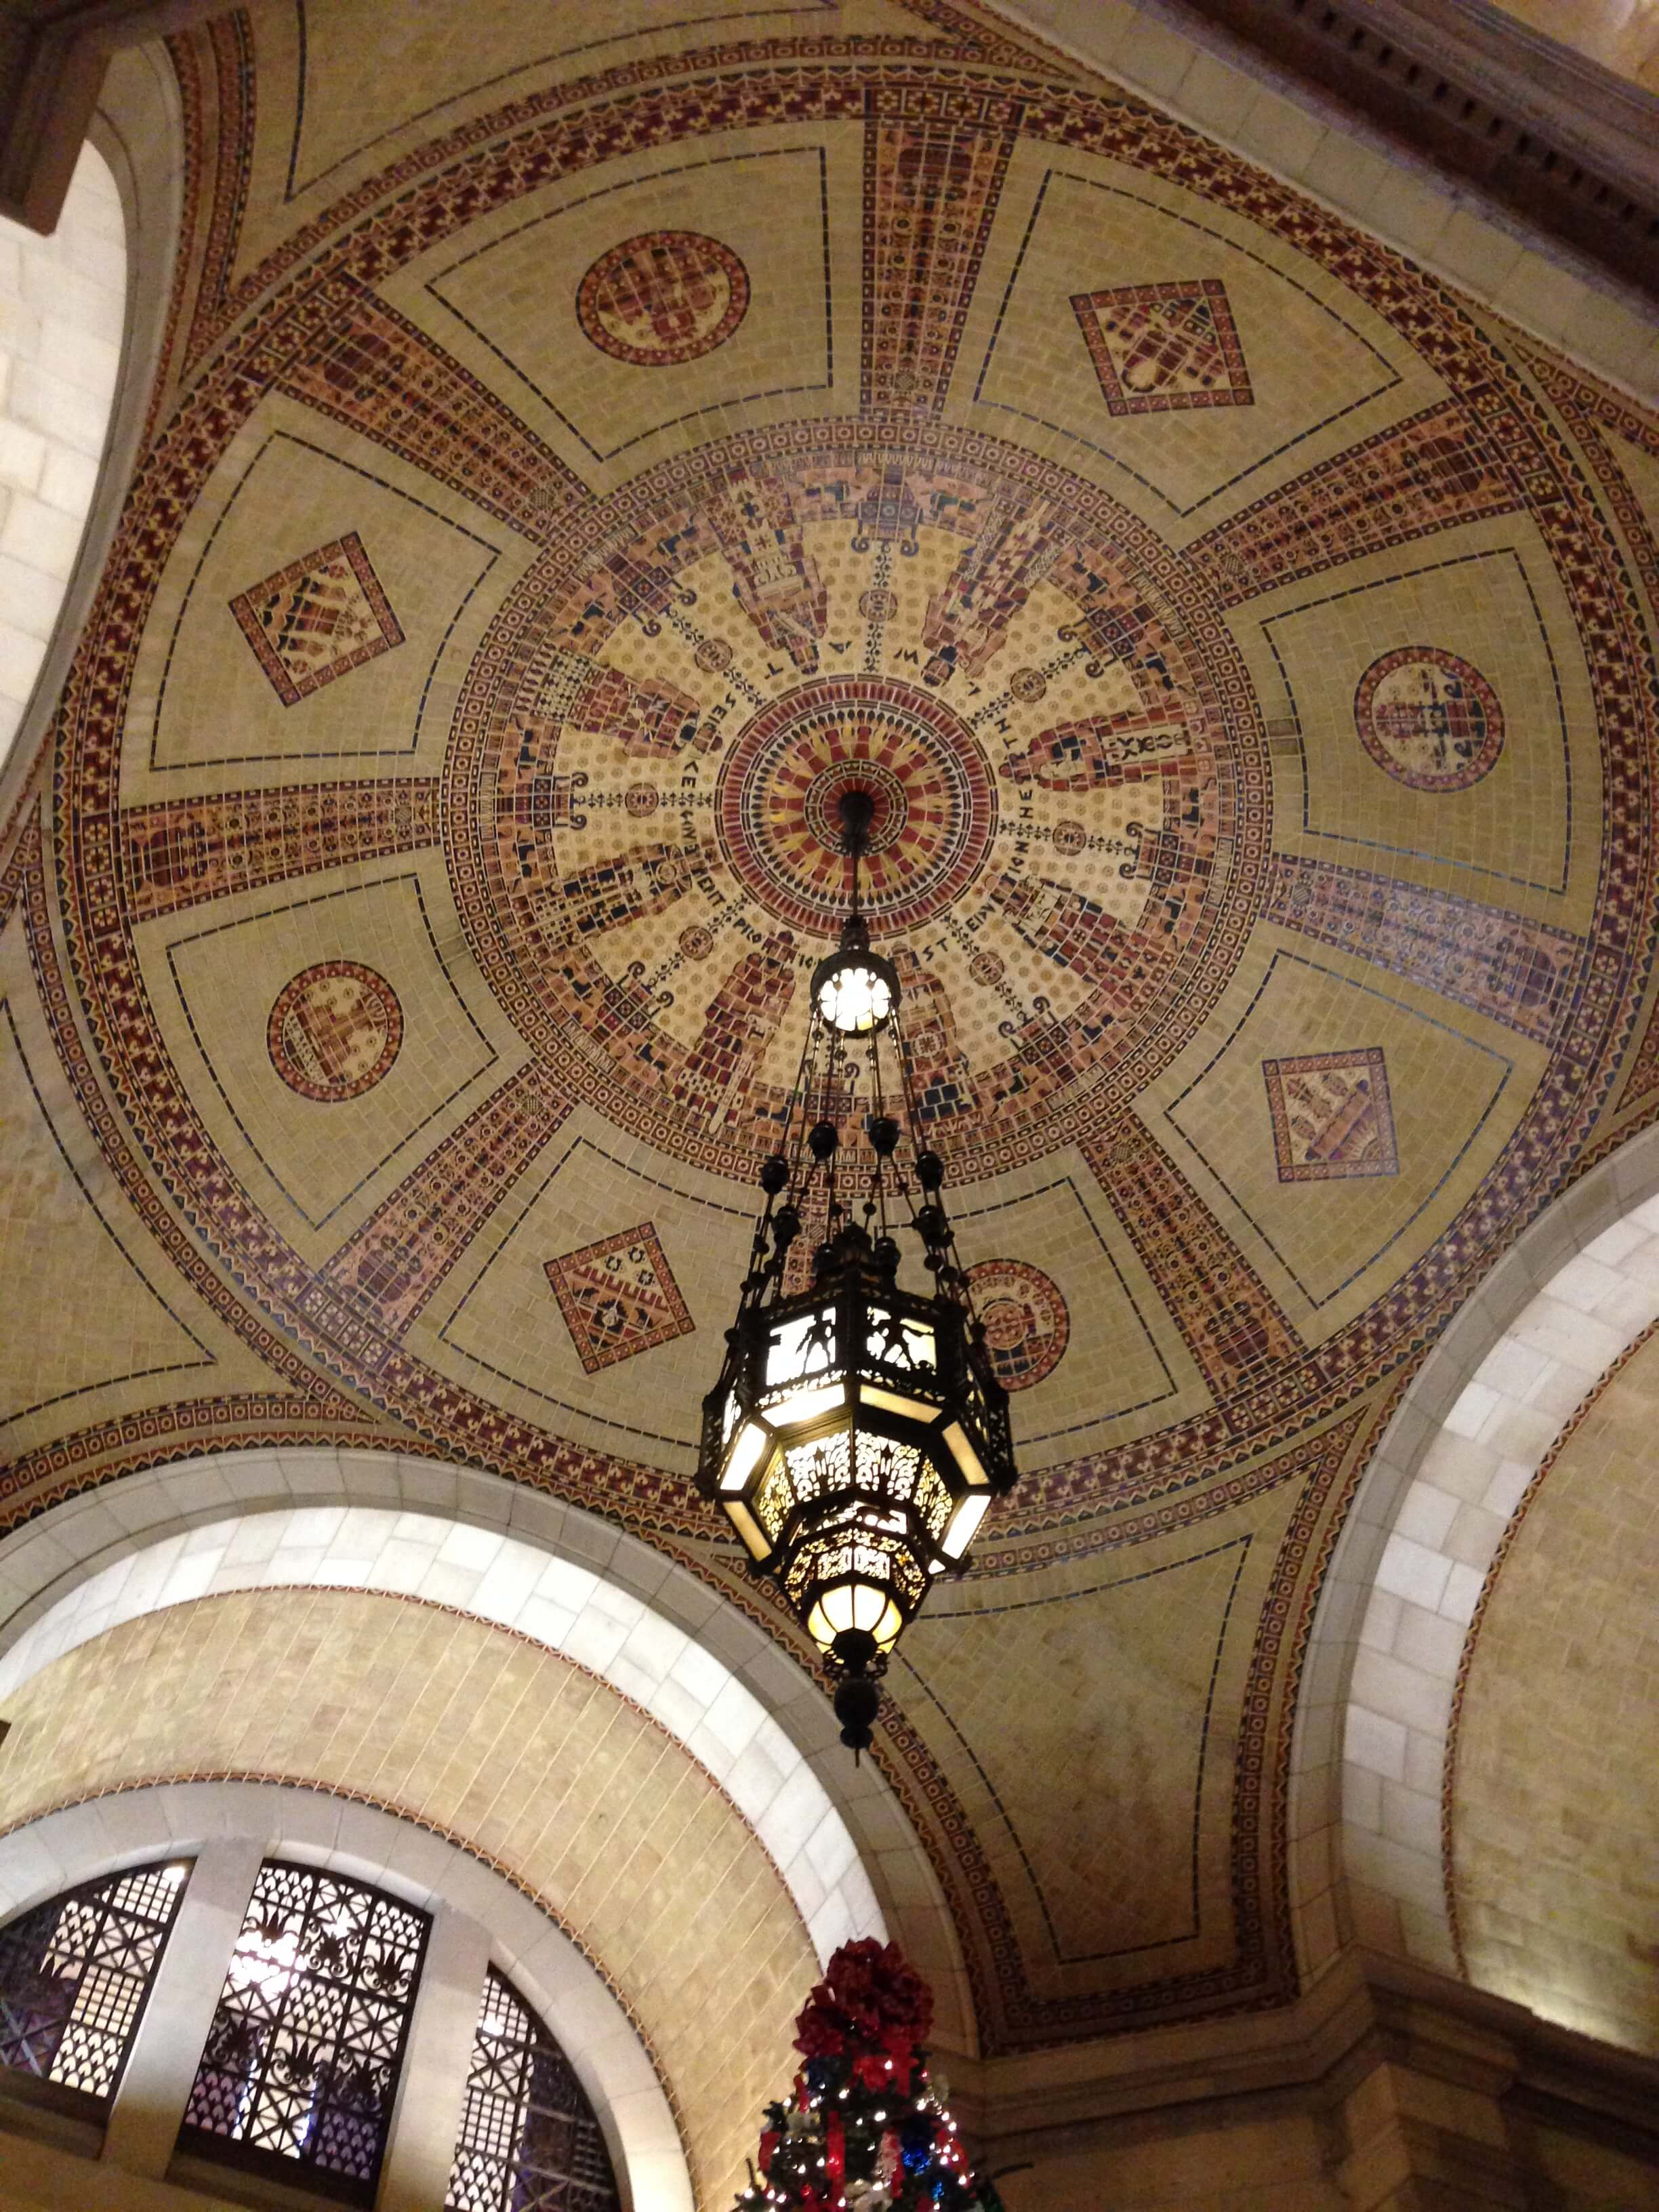 Ceiling of the rotunda